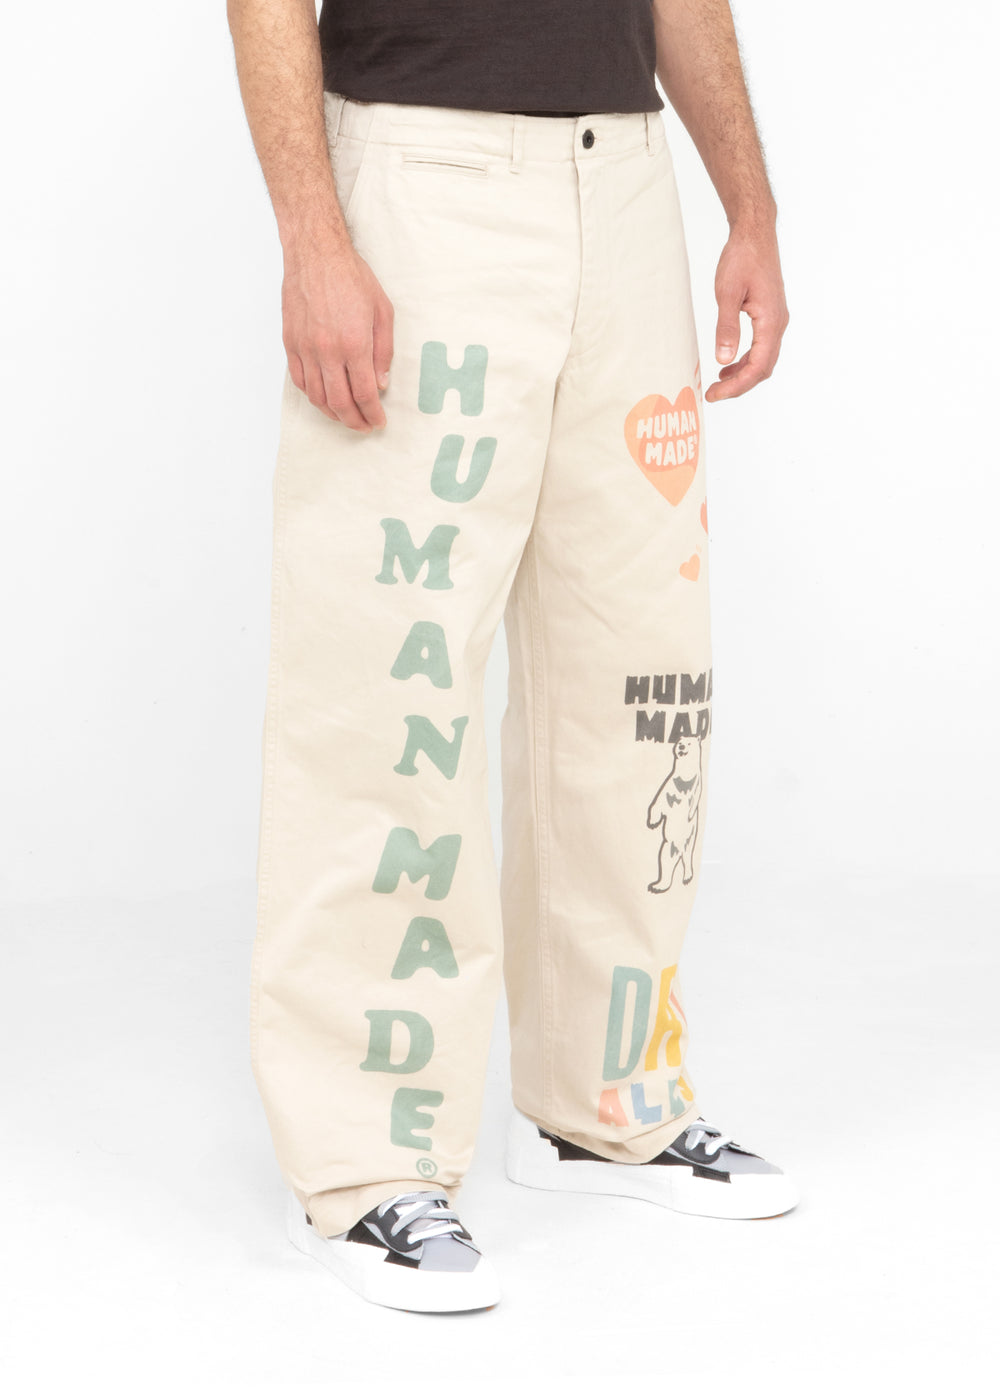 mltry-print-chino-hm18pt001-bei-bei-2